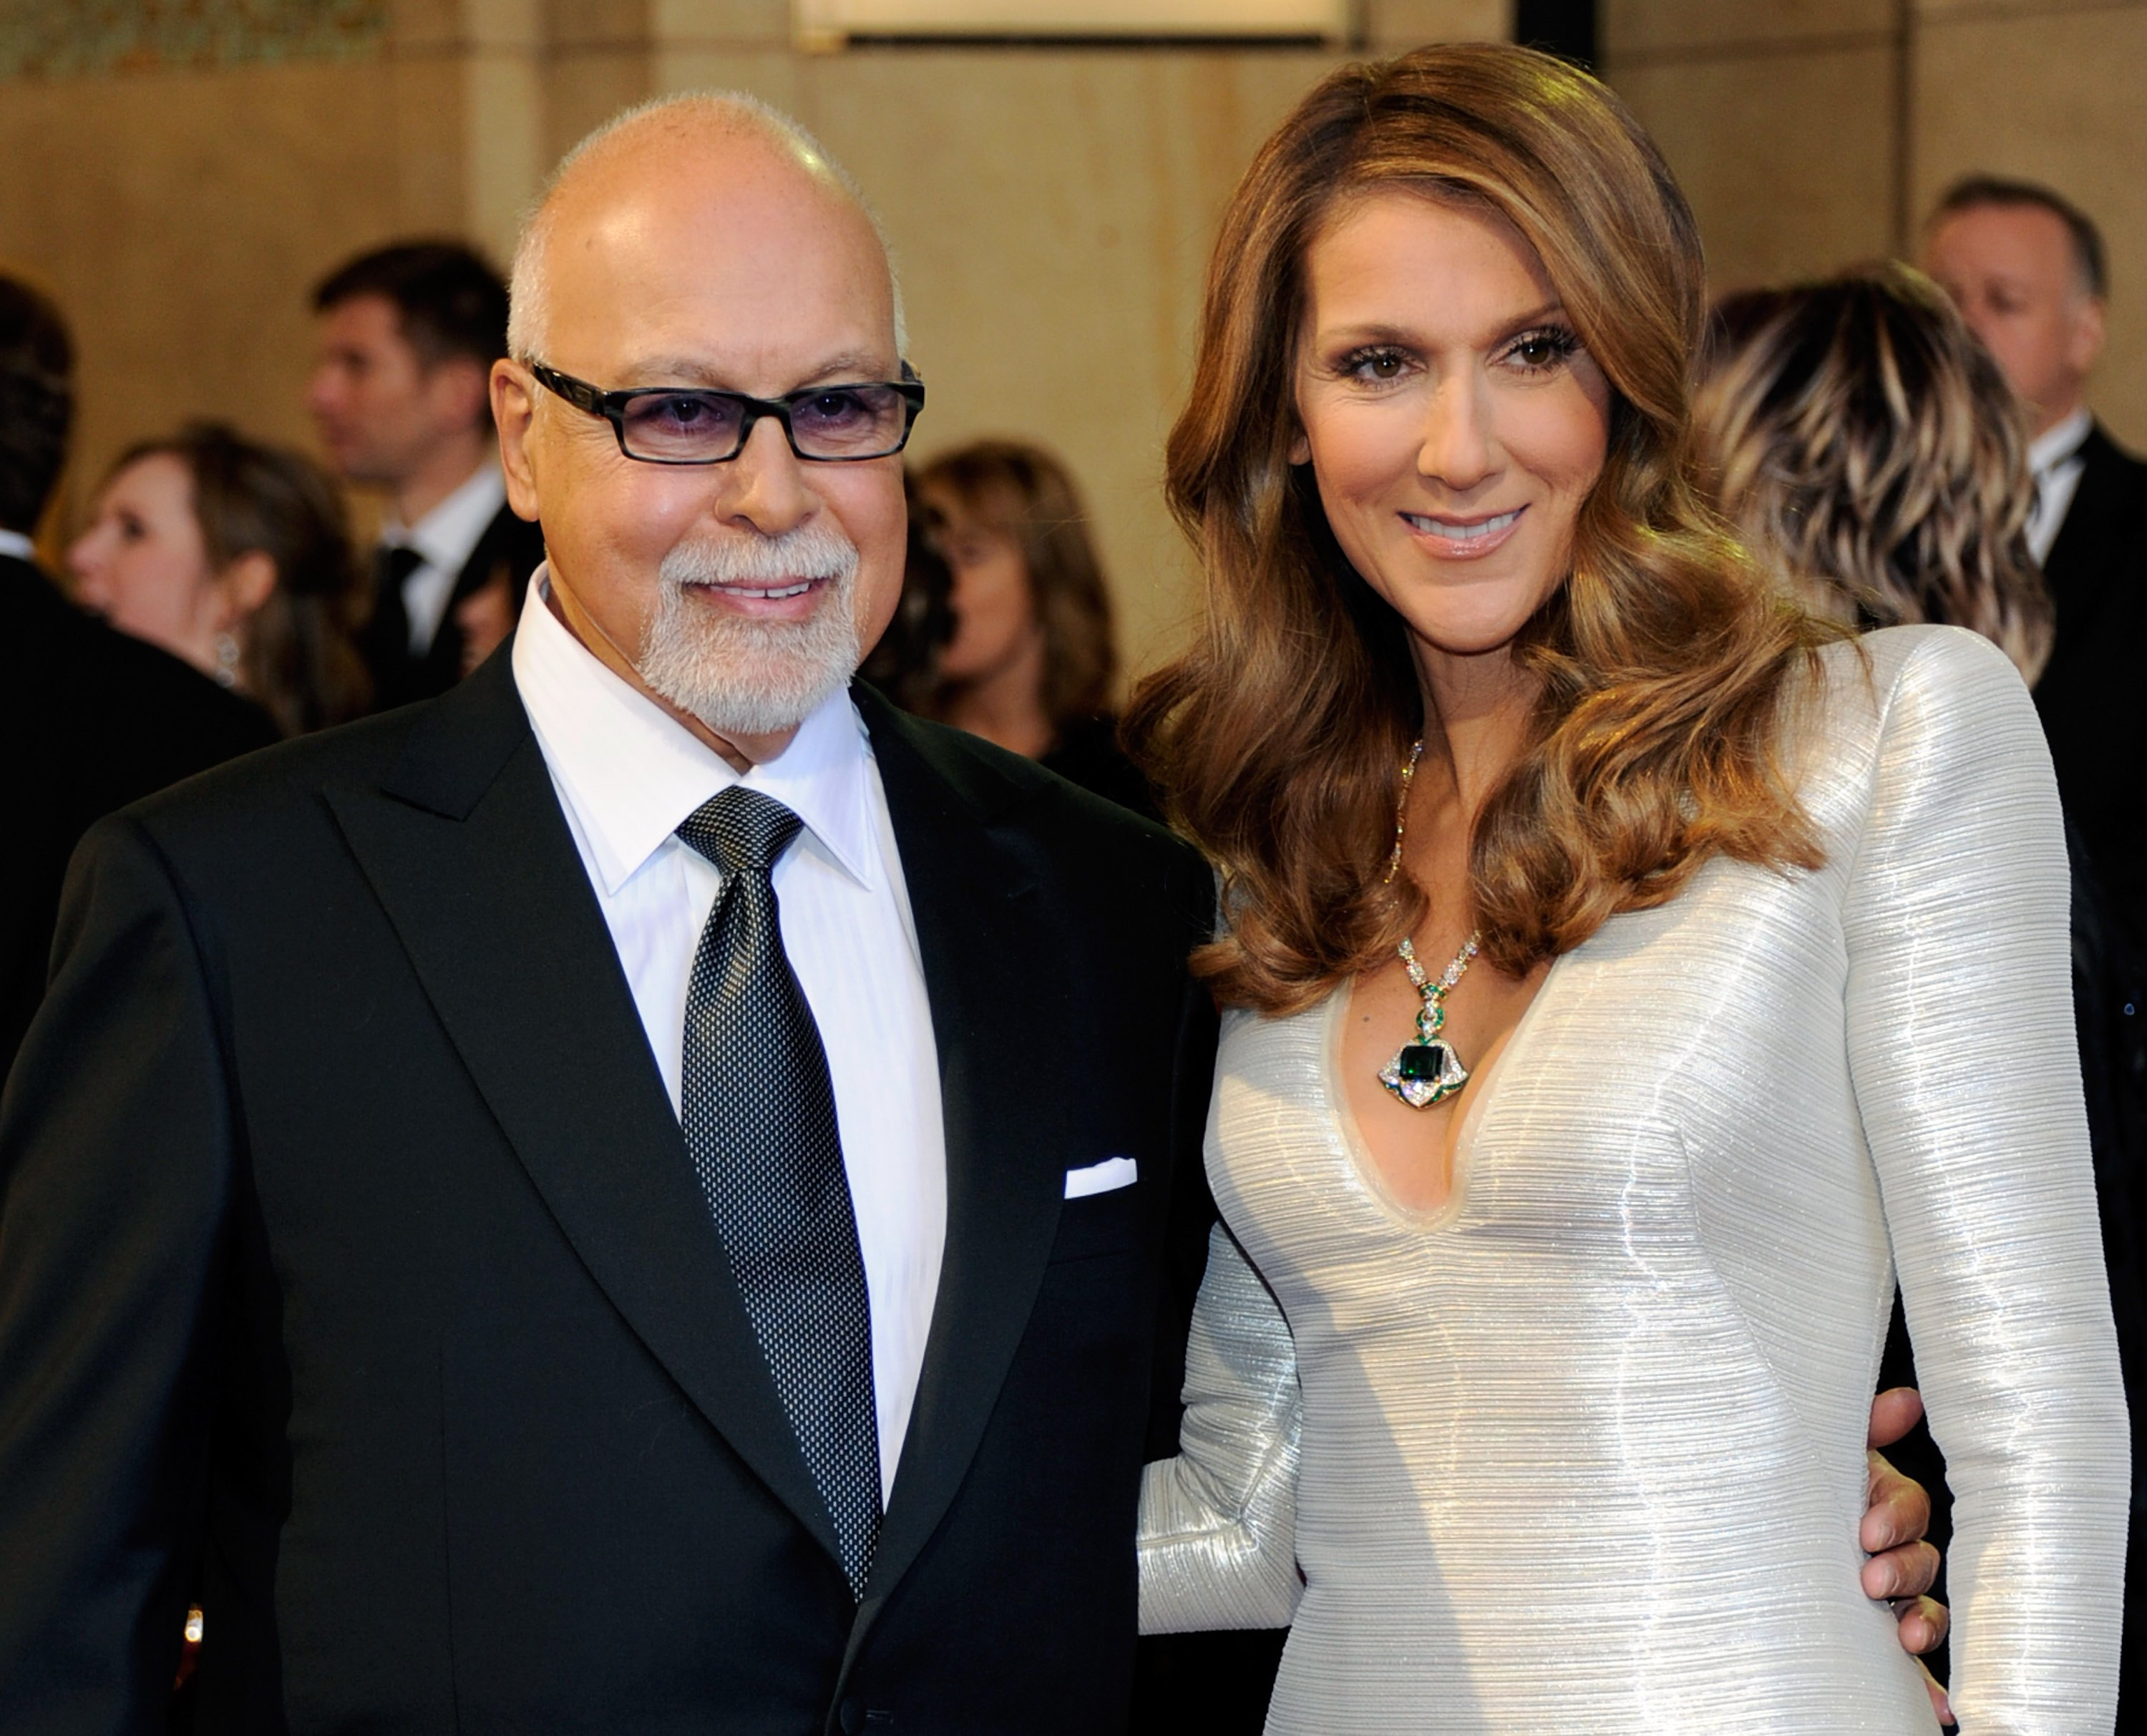 Rene Angelil and wife, singer Celine Dion